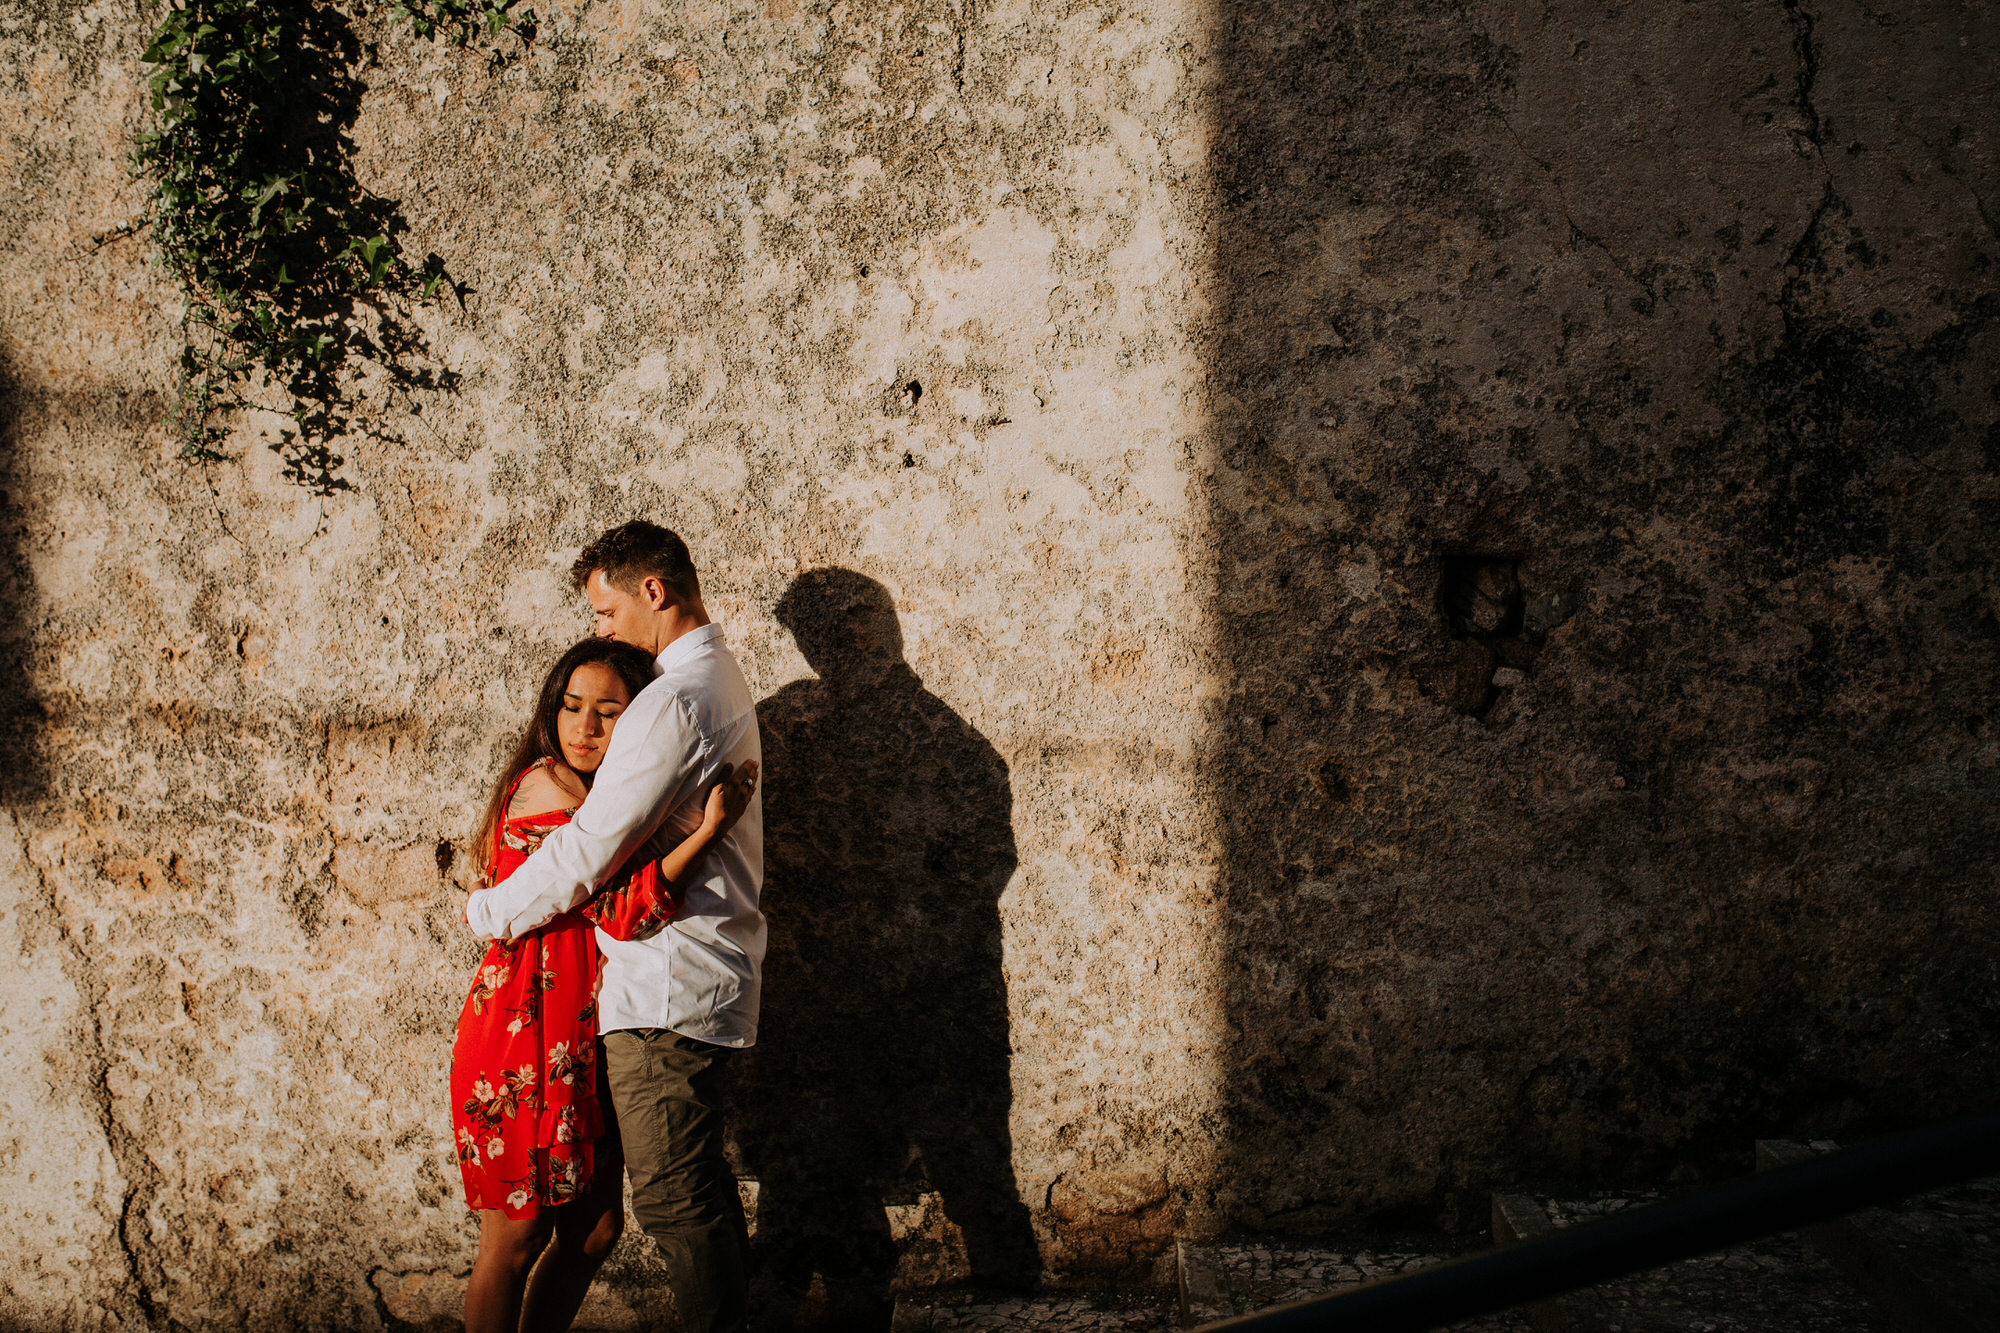 18-sessao-noivado-engagement-love-session-Sintra-lisboa-town-wedding-photography-photographer-natural-best-venue-planner-destination-filipe-santiago-fotografia-lifestyle-documentary